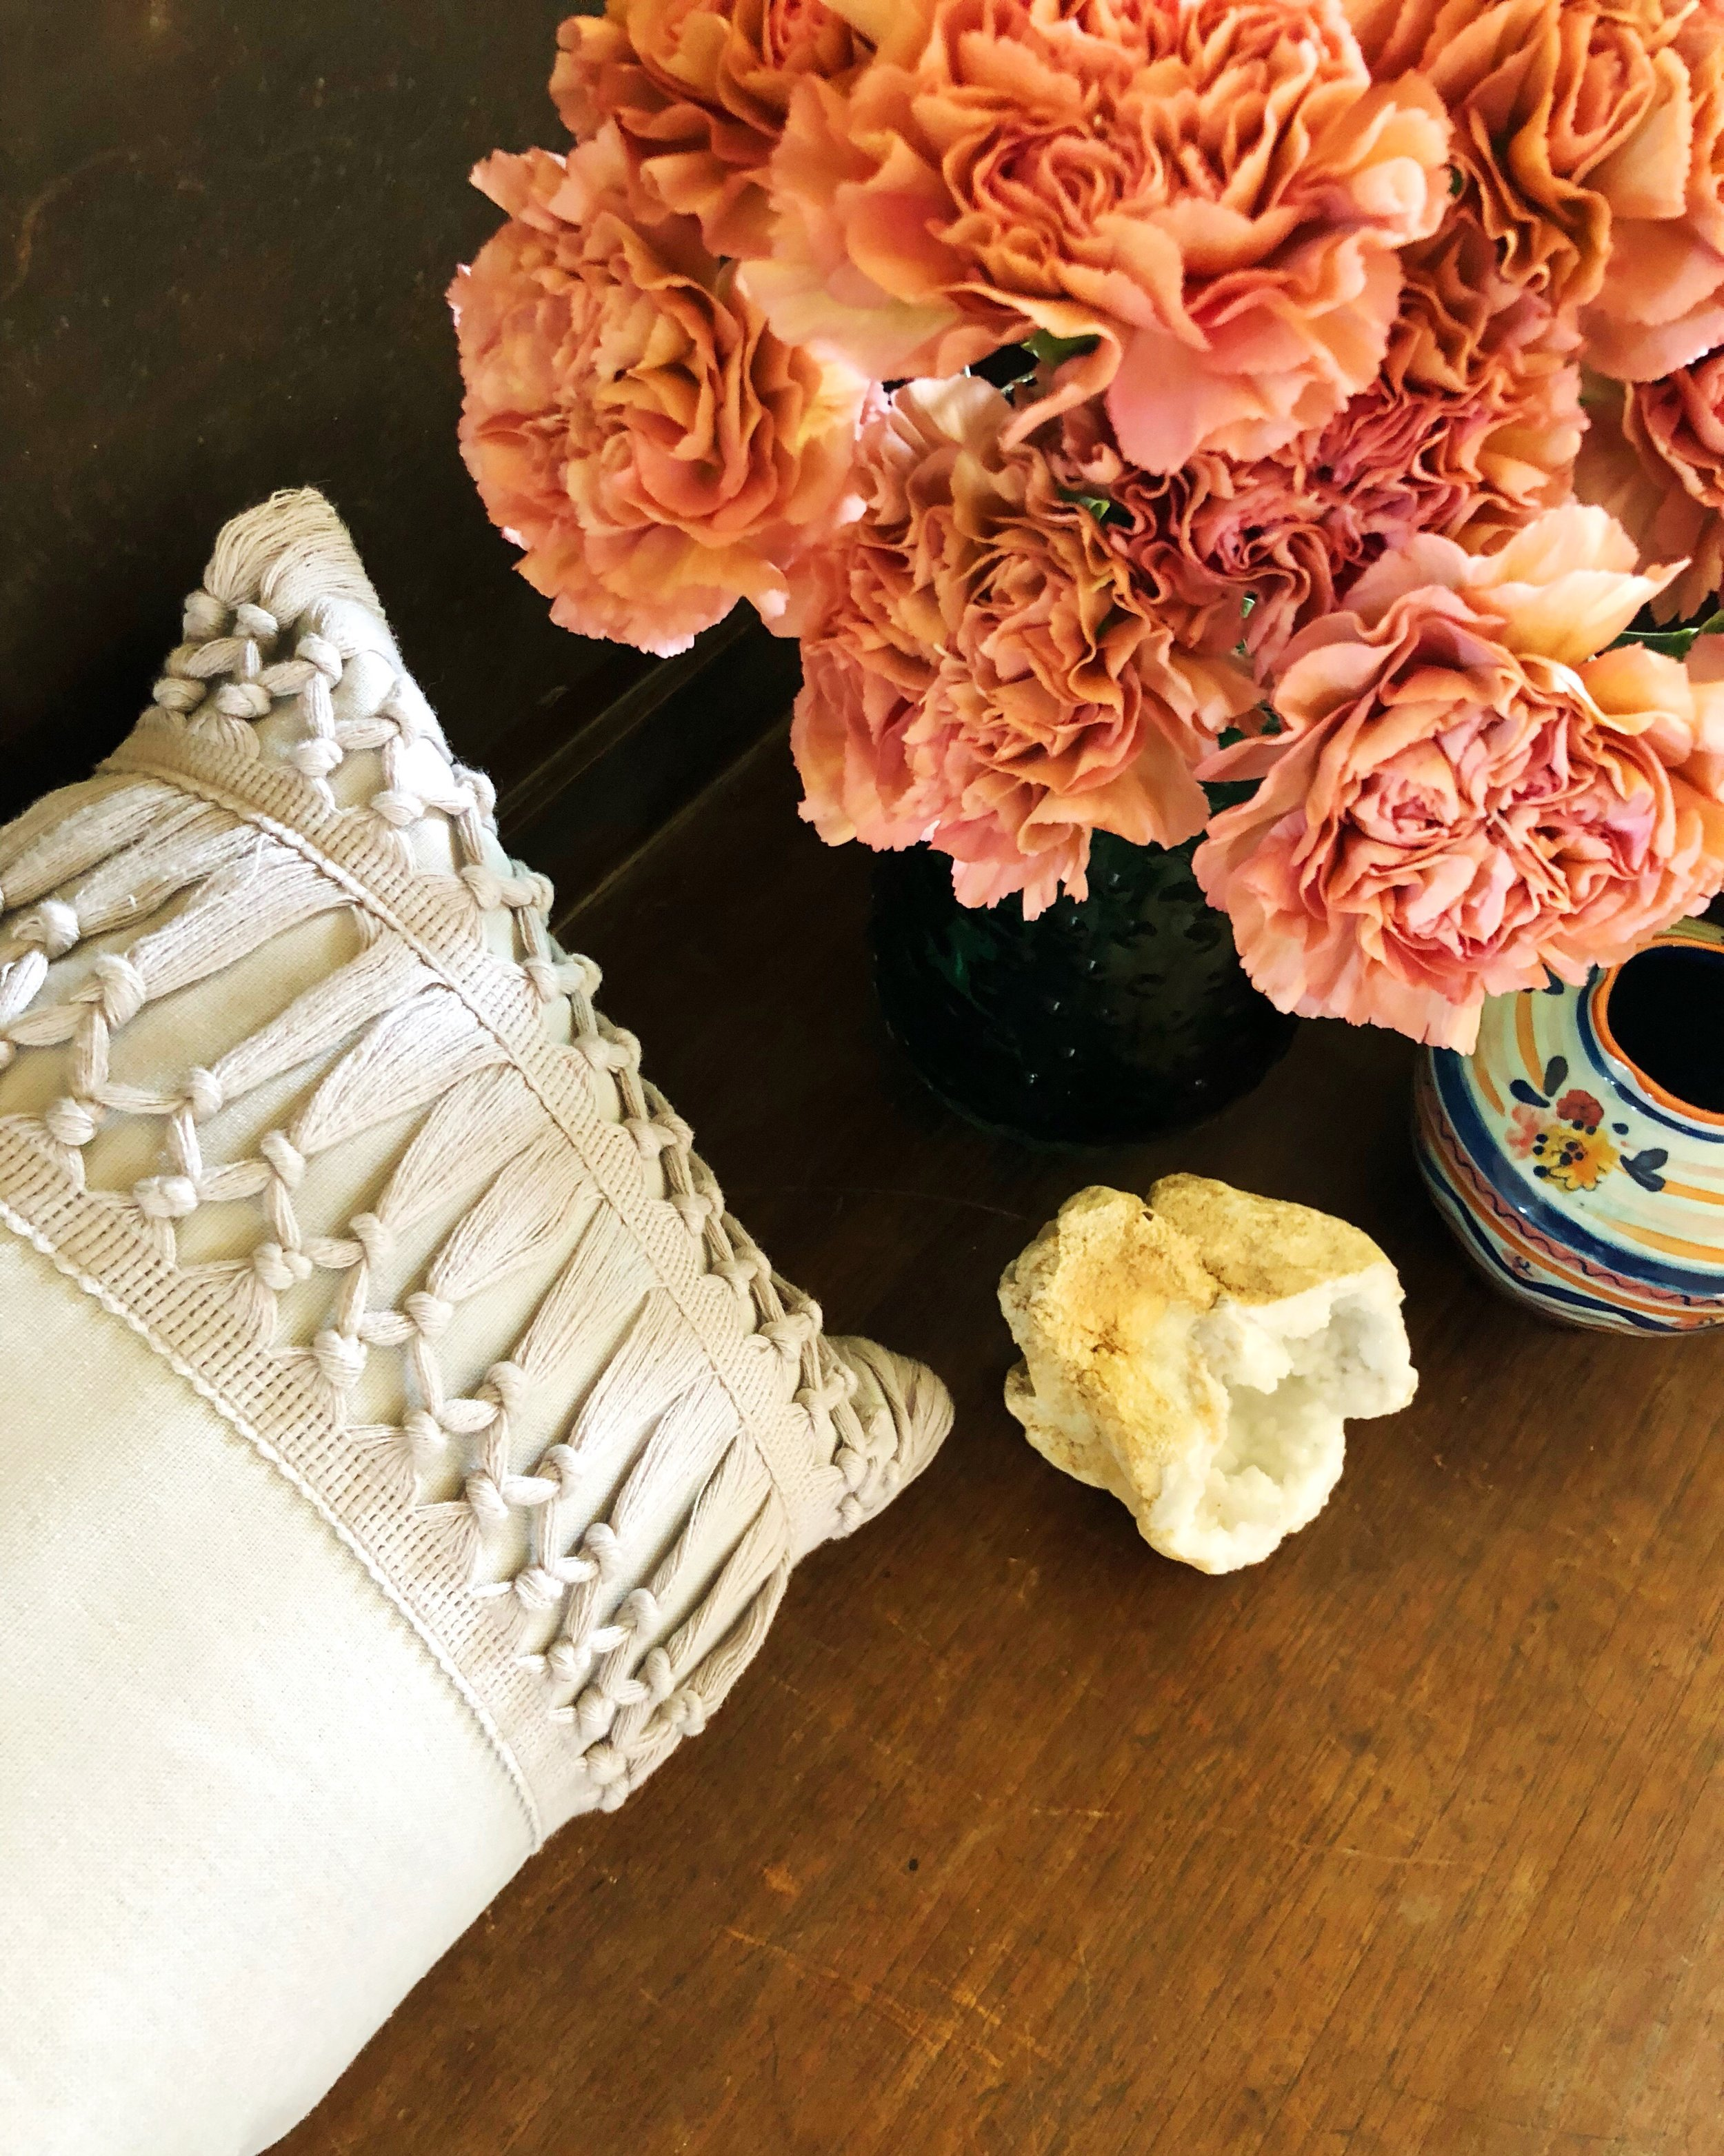 These lovely, fresh Carnations add the perfect pop of color to my living space. They last forever!